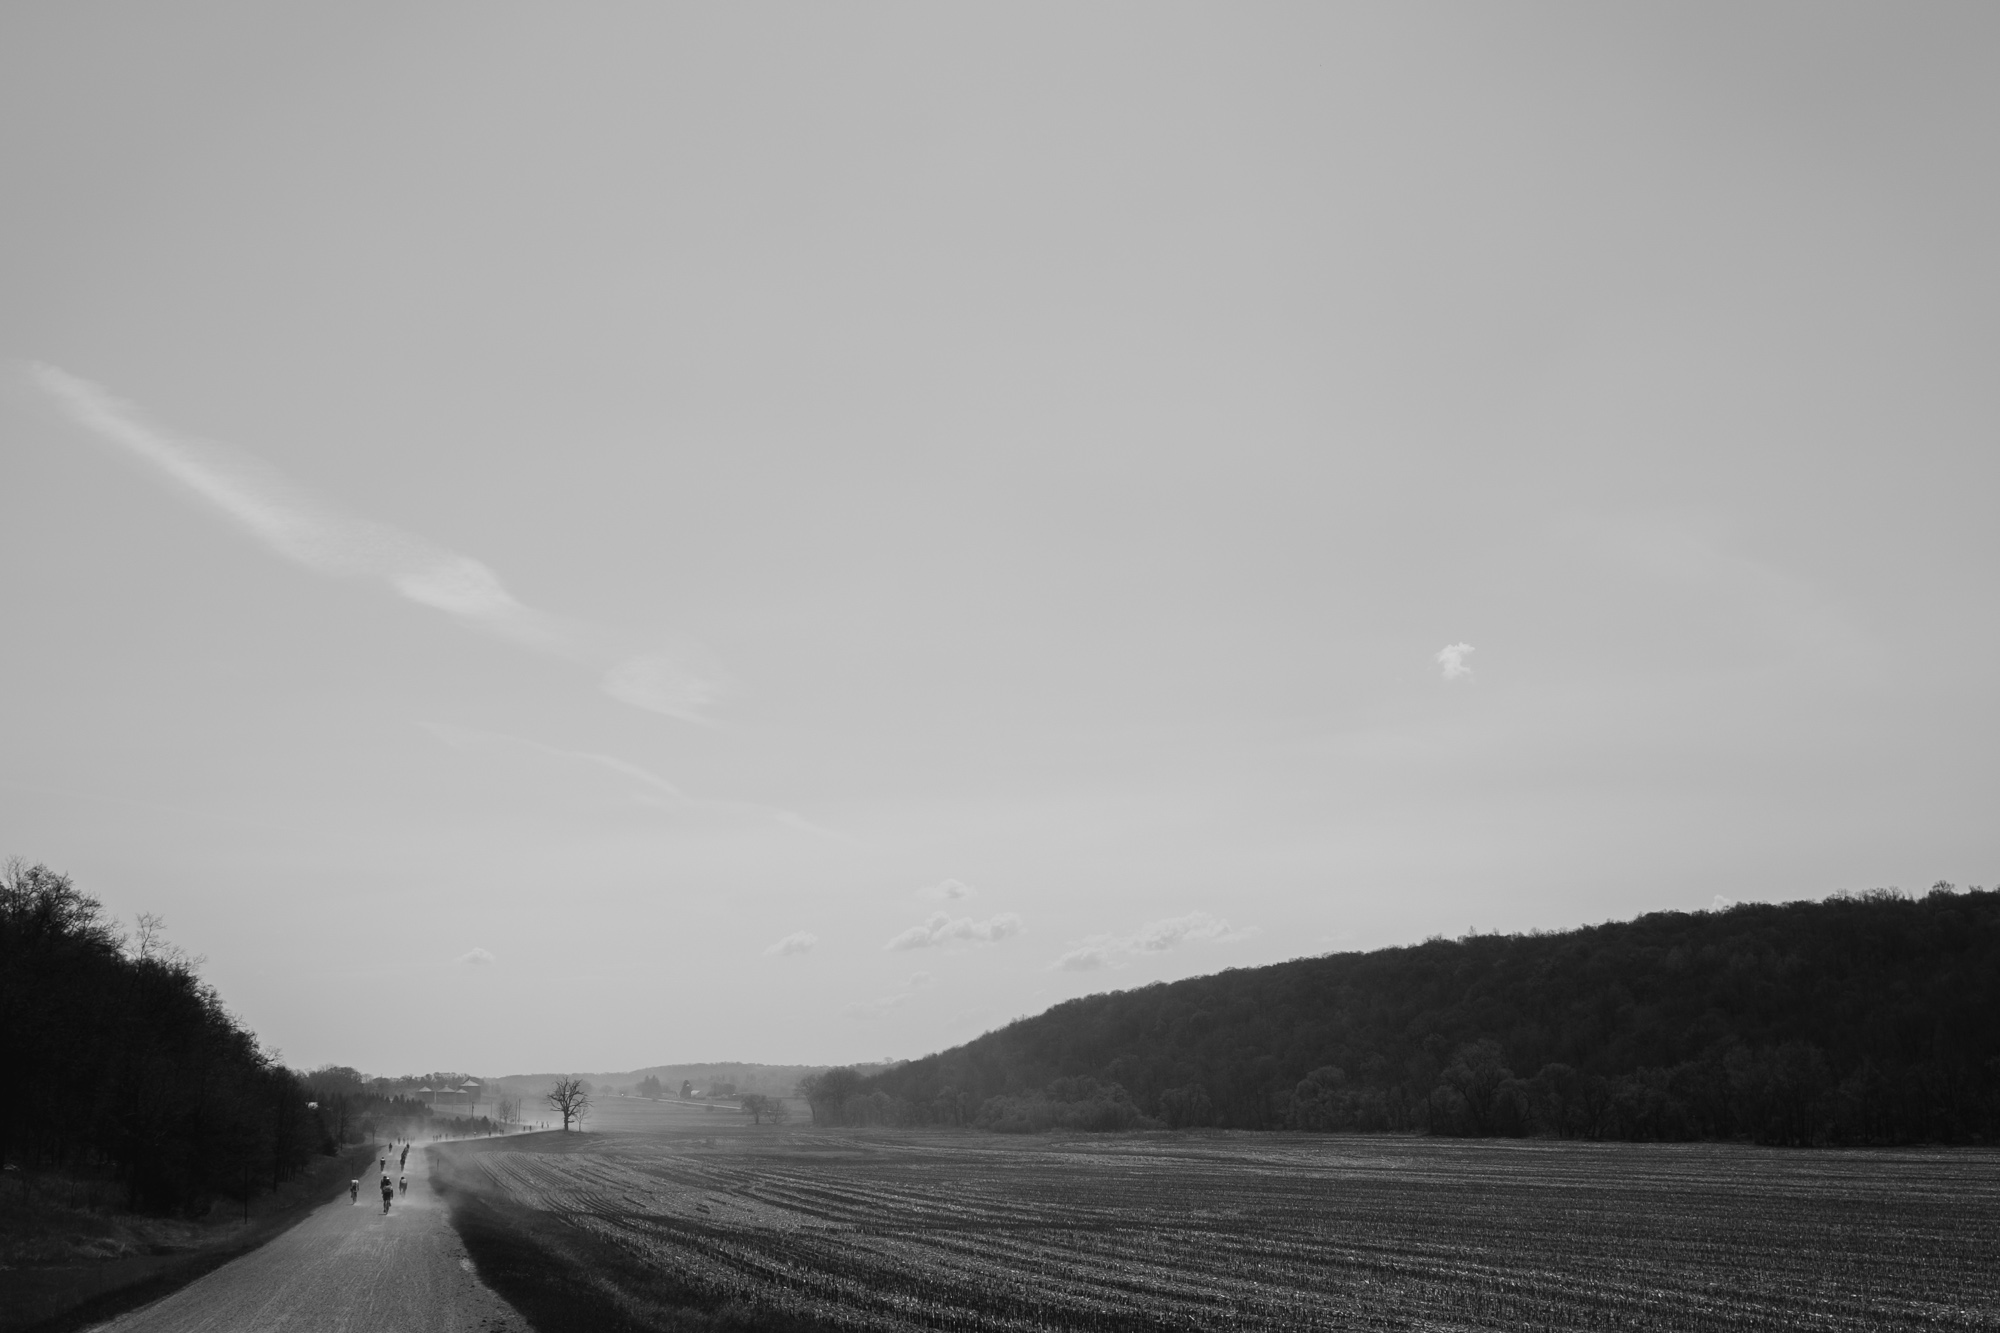 Racers kicked up clouds of dust on the dry roads that stretched into the distance in both directions.